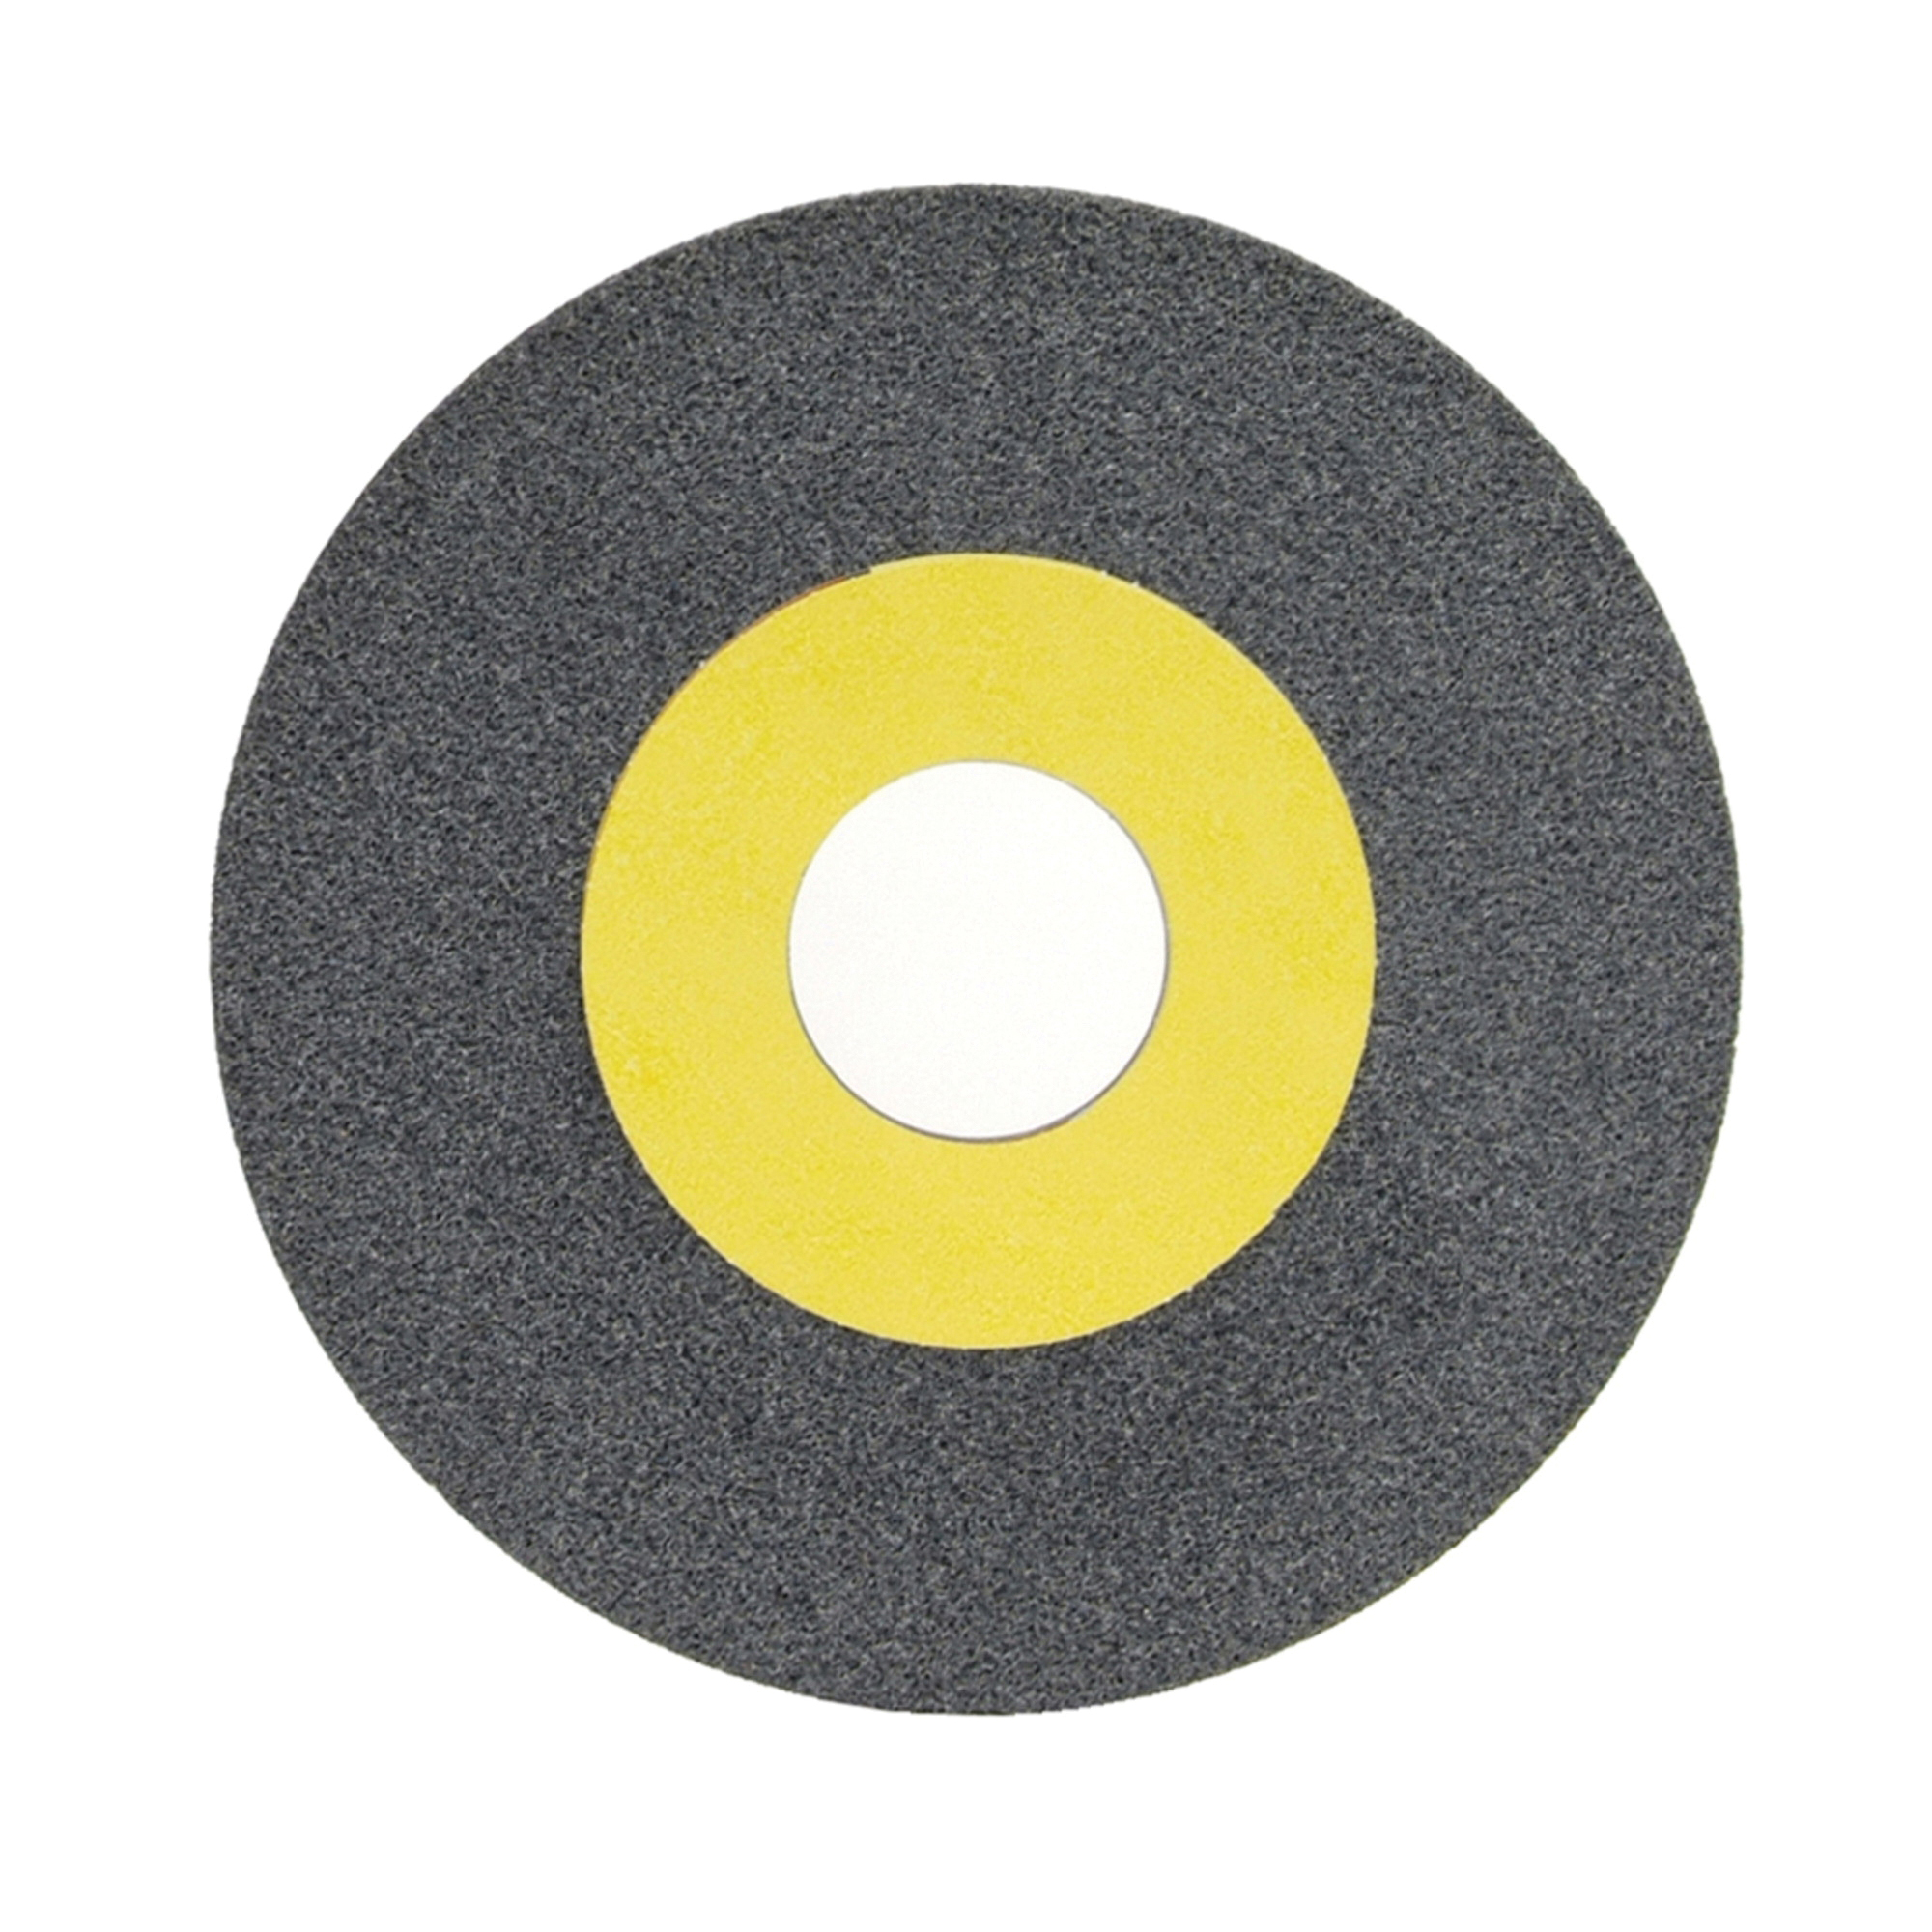 Norton® 66253263459 32A Straight Toolroom Wheel, 12 in Dia x 2 in THK, 3 in Center Hole, 46 Grit, Aluminum Oxide Abrasive